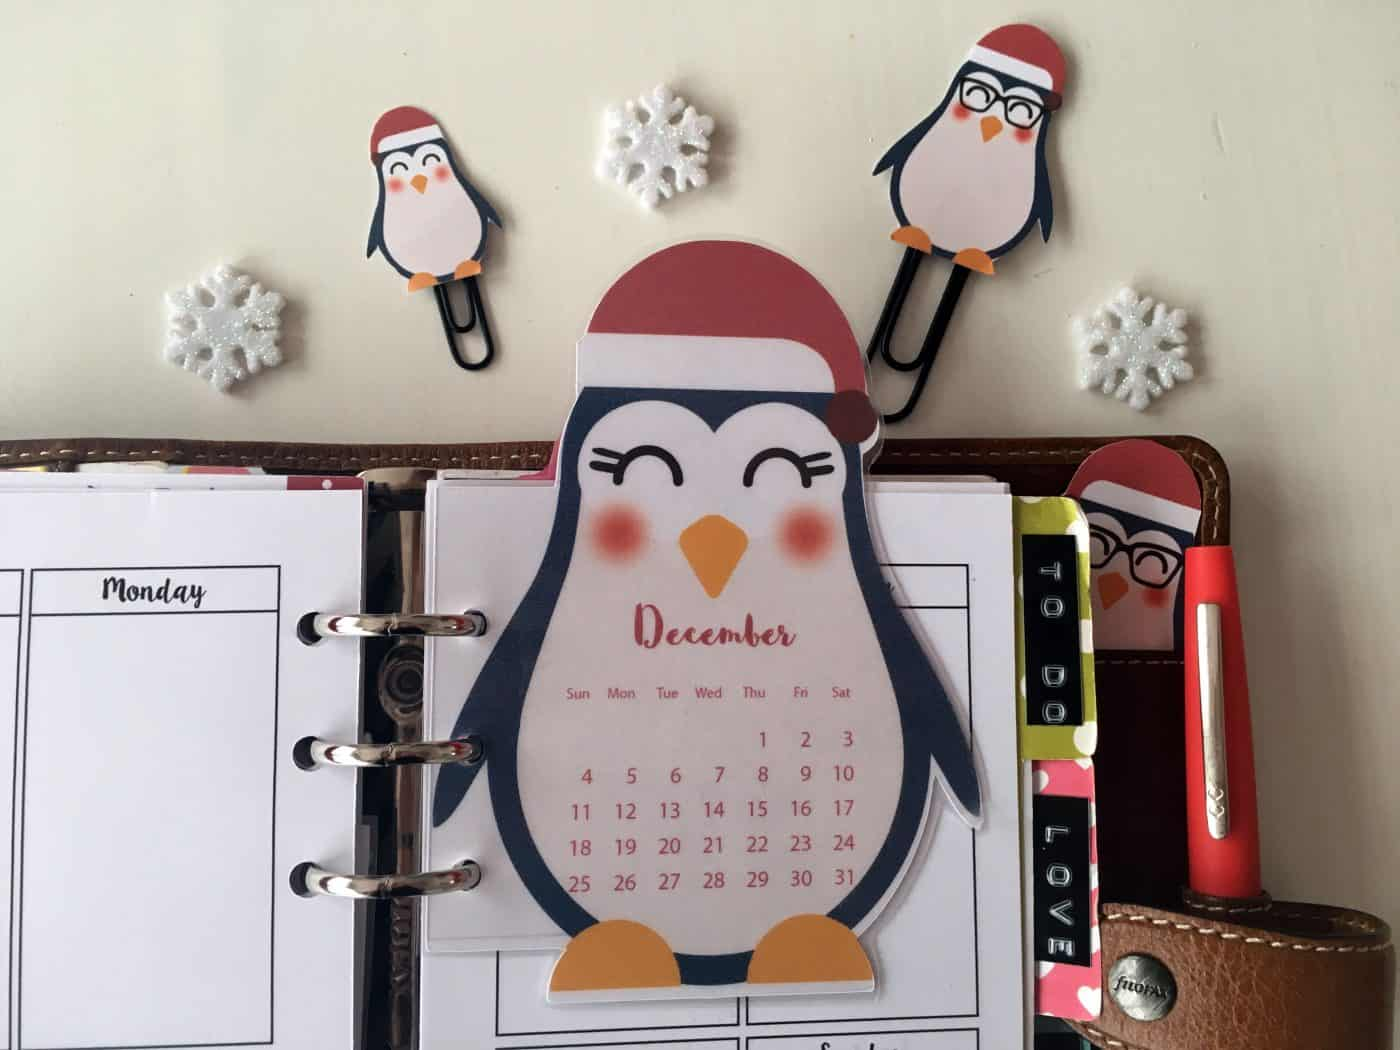 Penguin calendar divider + paperclips - Free planner printable (+blank version)